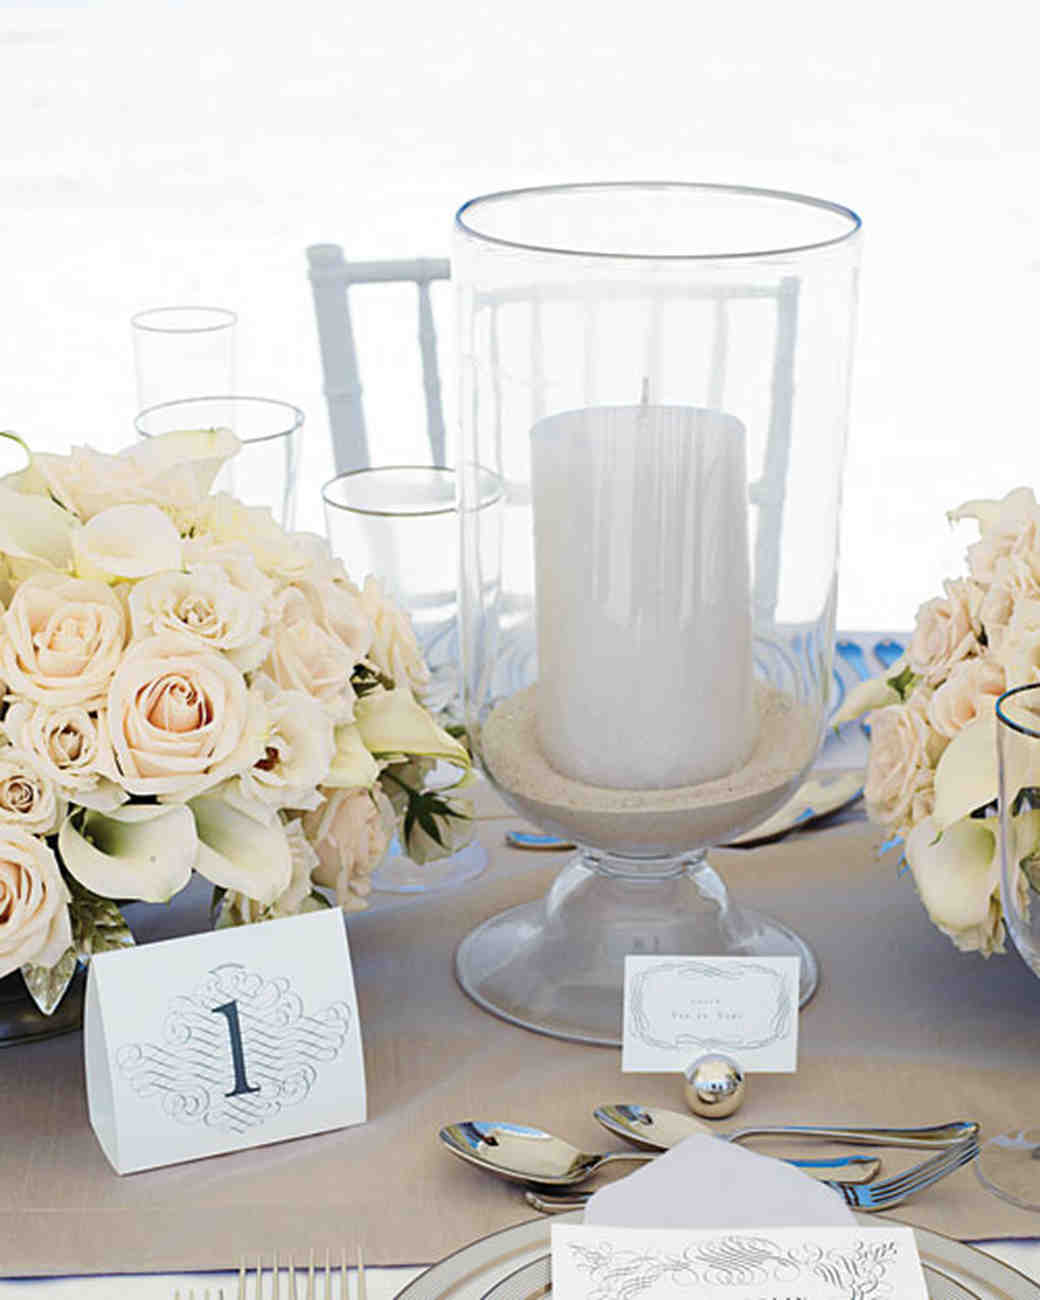 50 Wedding Centerpiece Ideas We Love | Martha Stewart Weddings